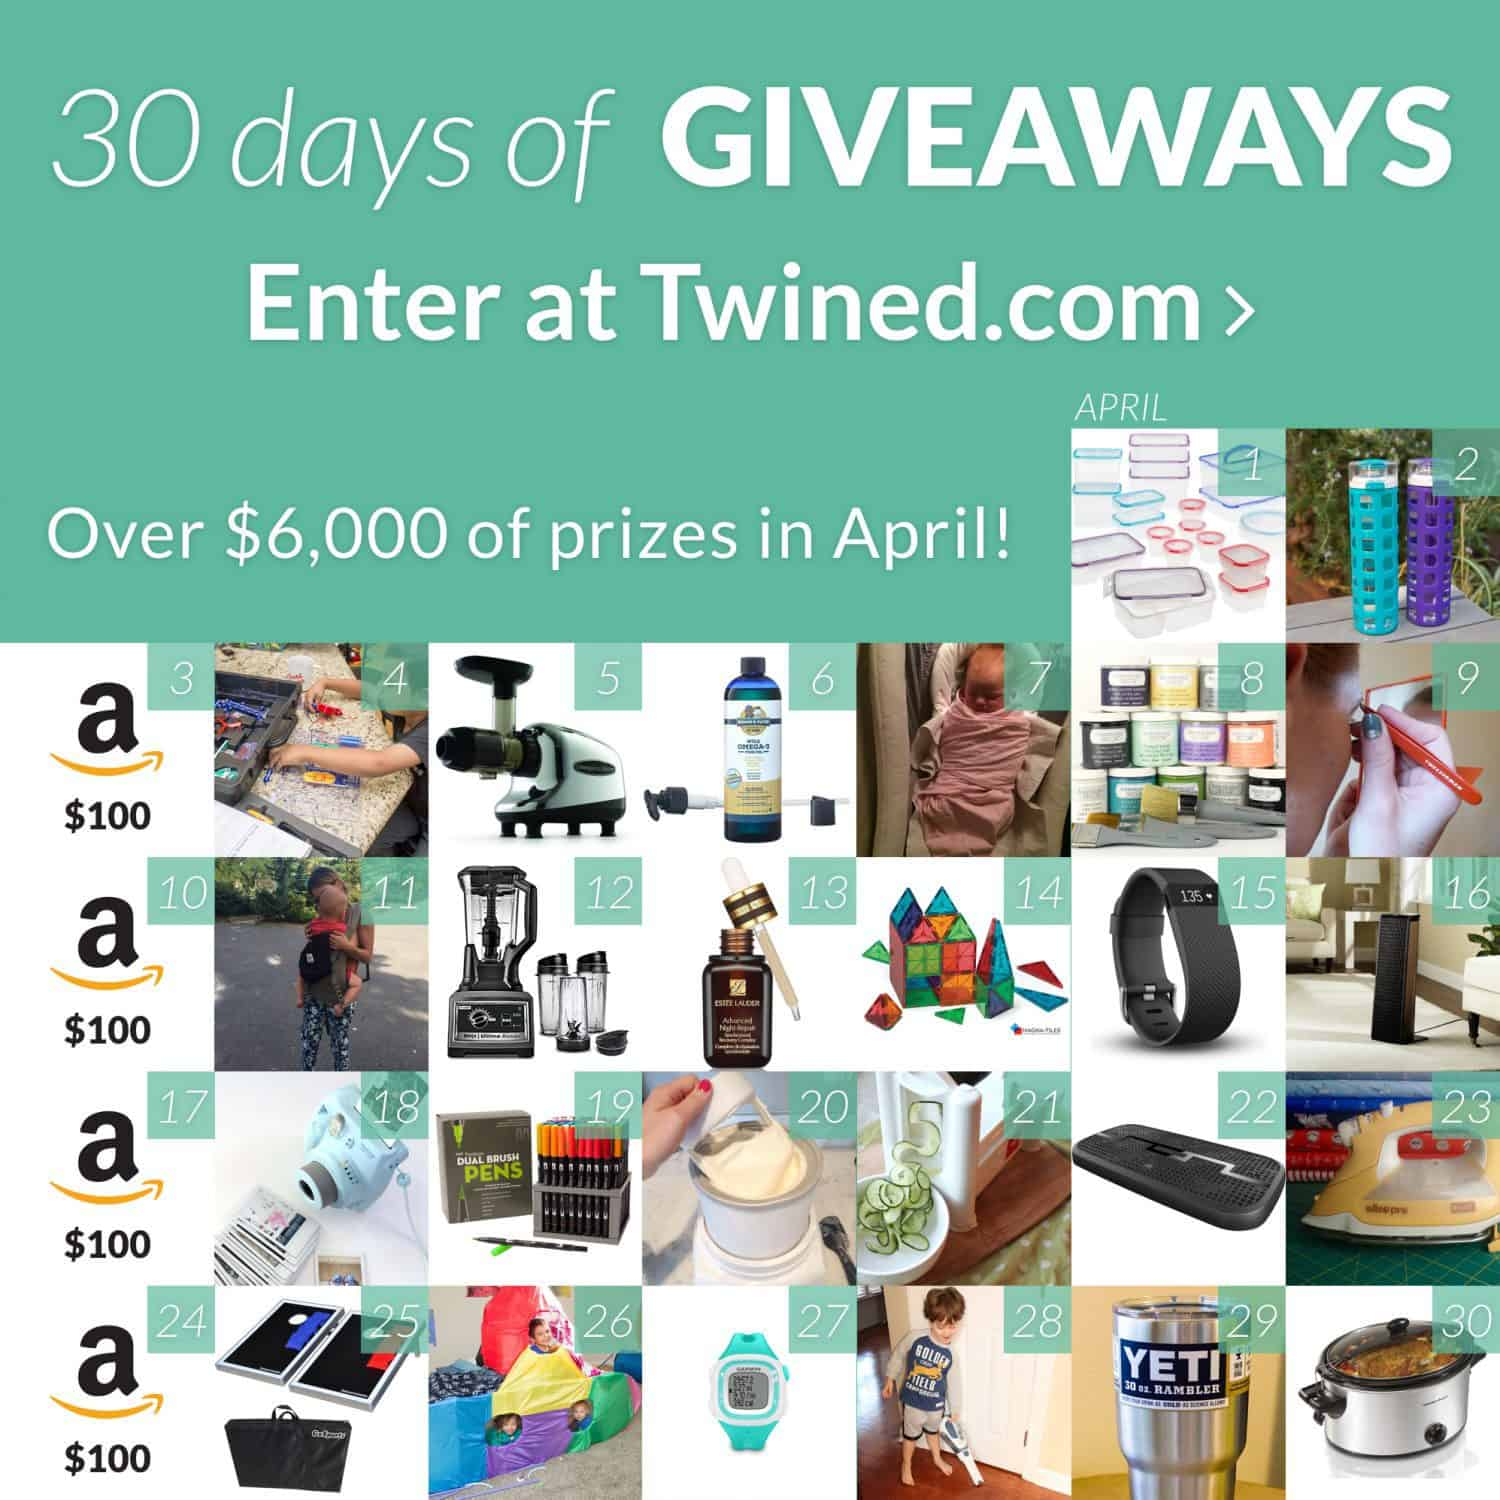 30 Days of Giveaways by Twined